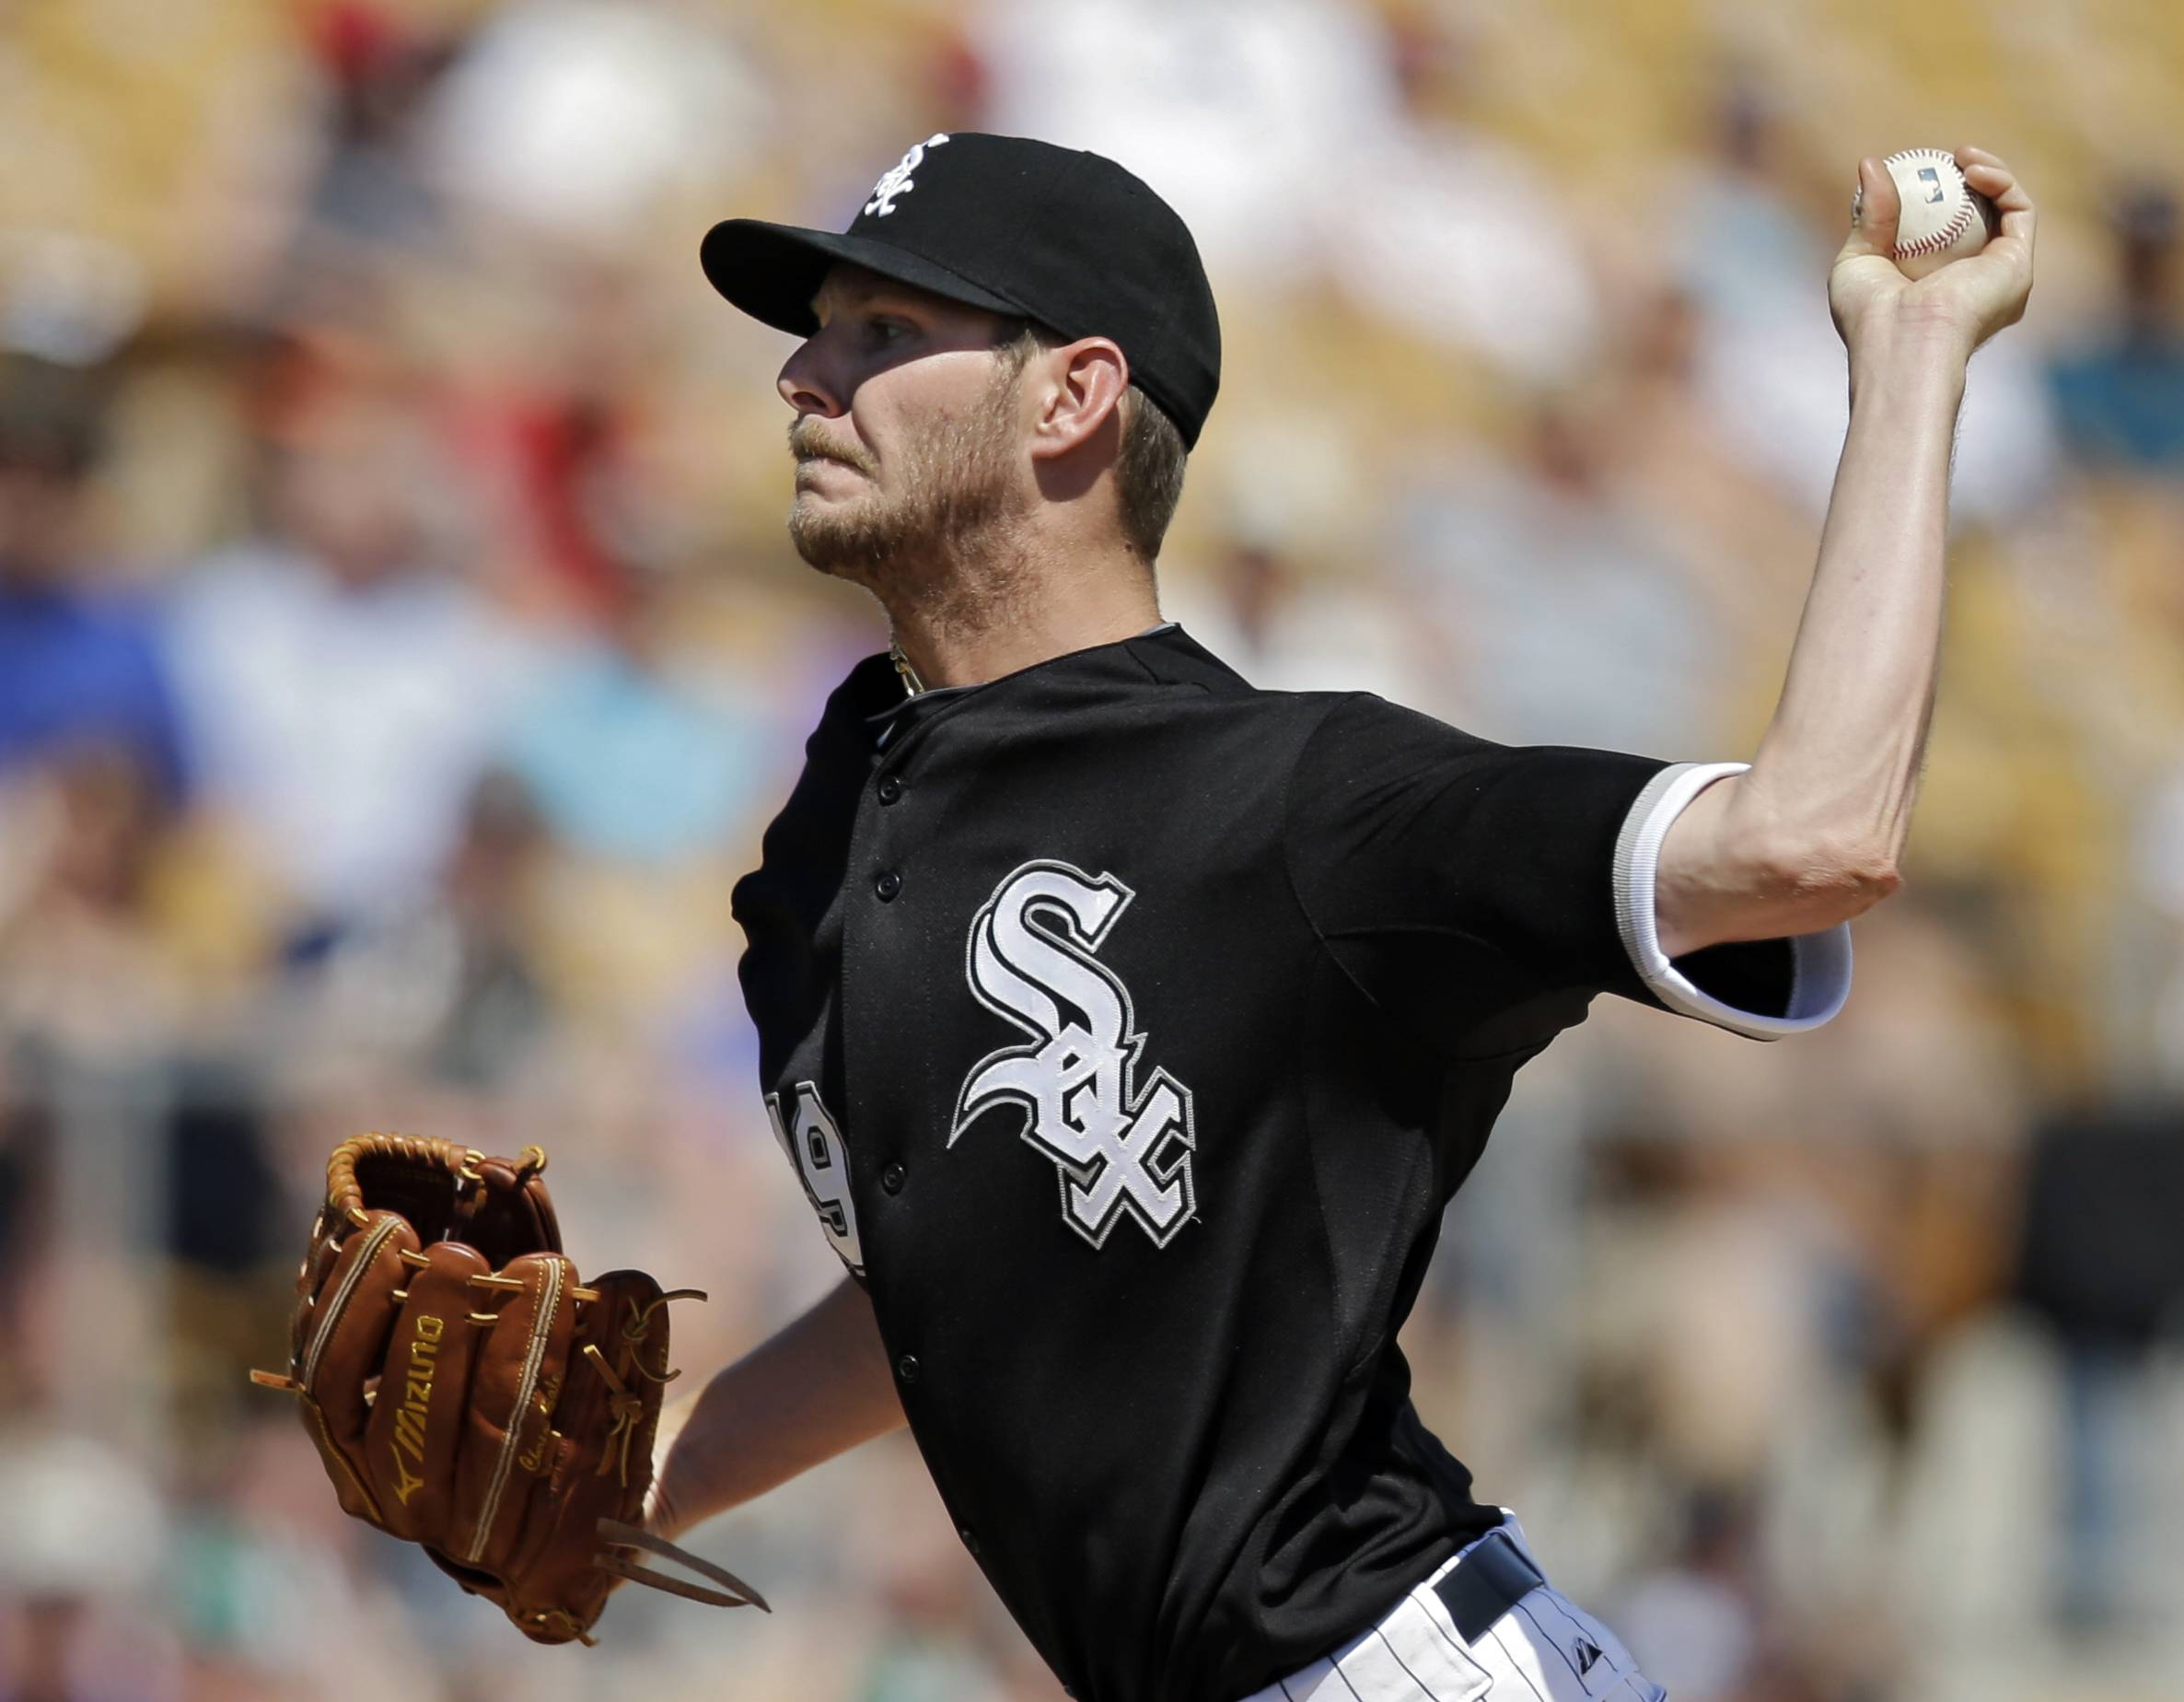 Chris Sale will be on the mound for the White Sox on Monday when they open their season against the Twins at U.S. Cellular Field.